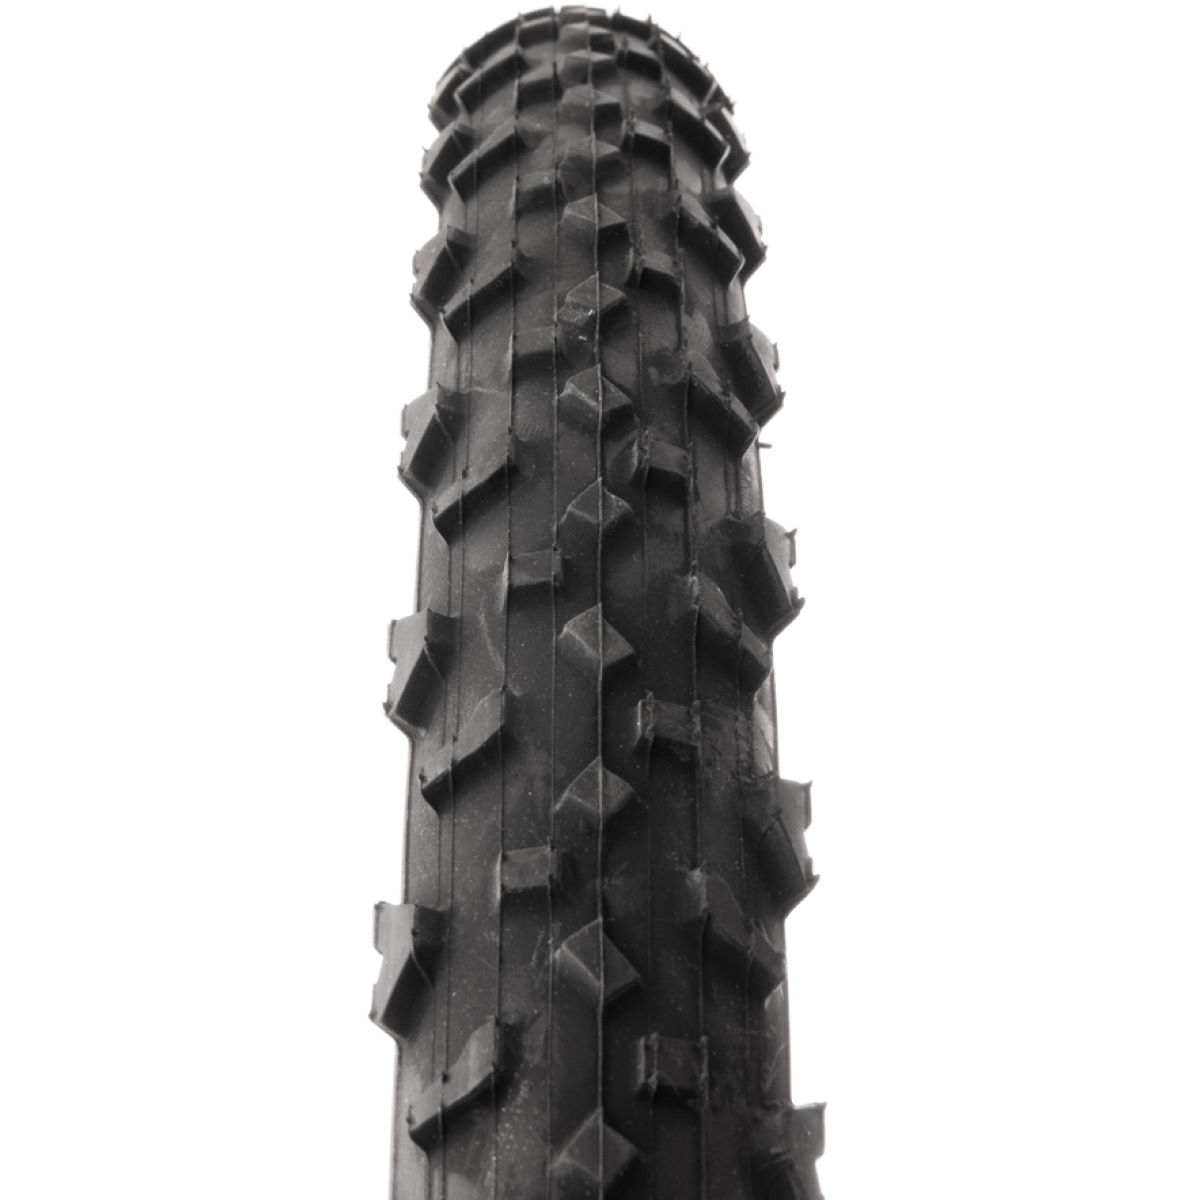 Pneu VTT Michelin Country Cross - 26' 1.95' Wire Bead Noir Pneus VTT